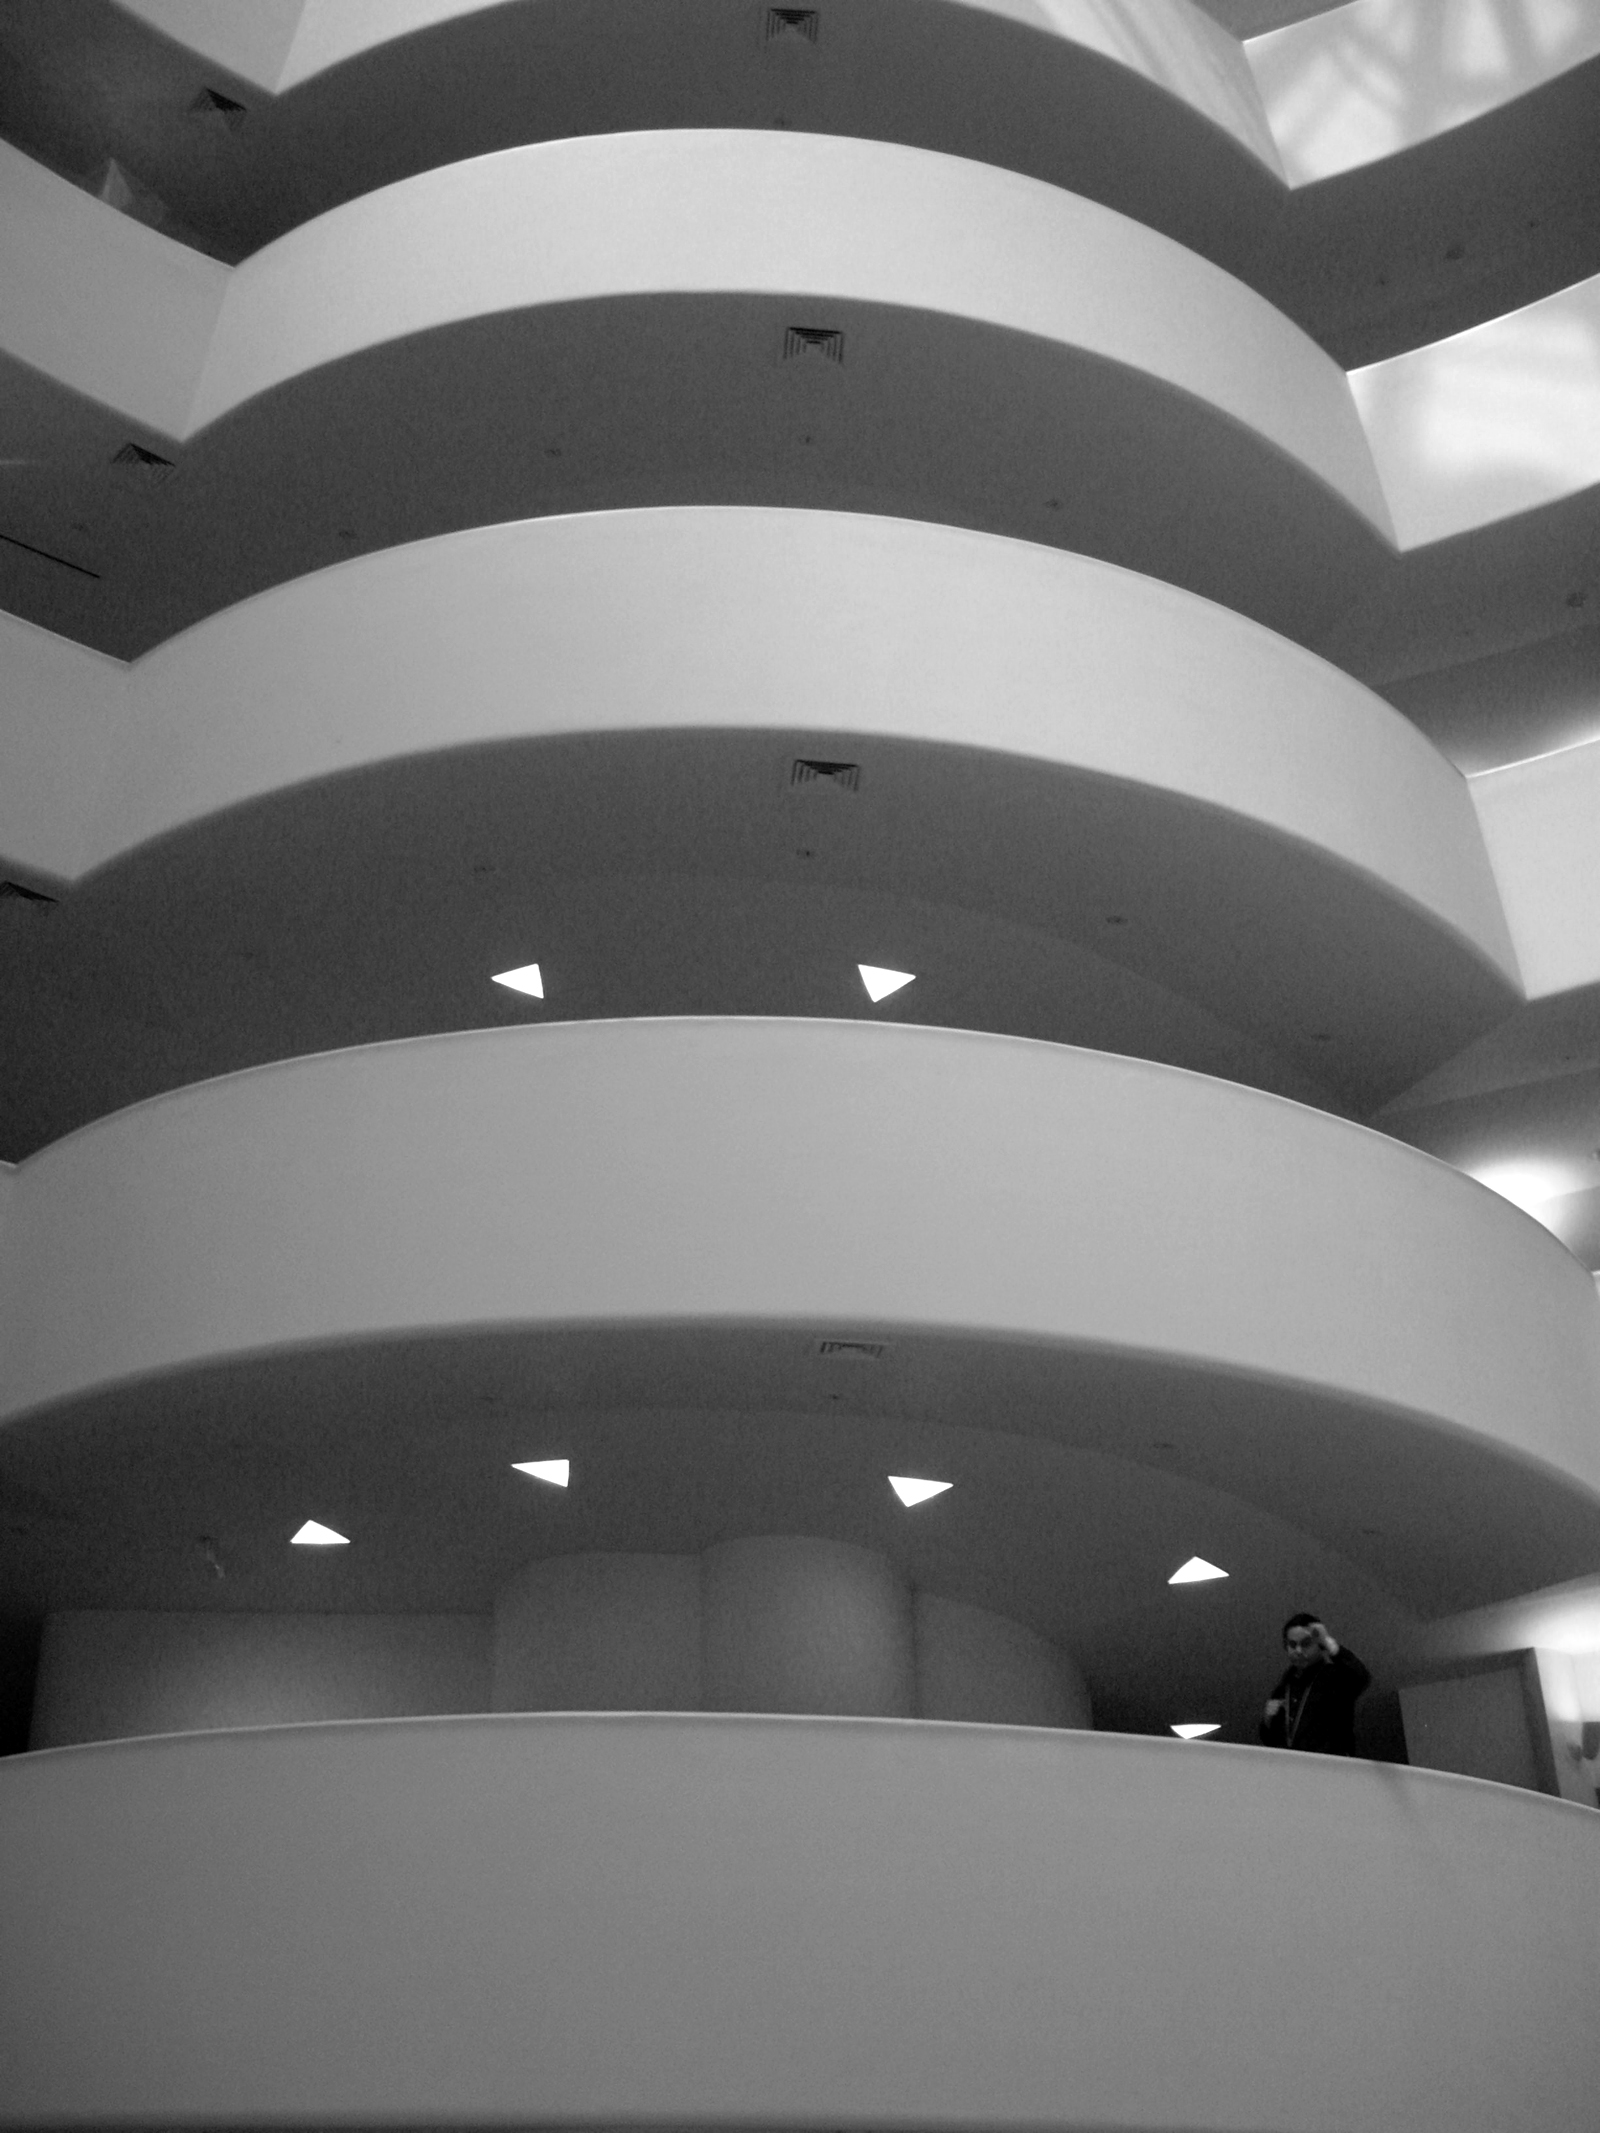 The Guggenheim Experience, Bspo06, Building, B&w, Museum, HQ Photo